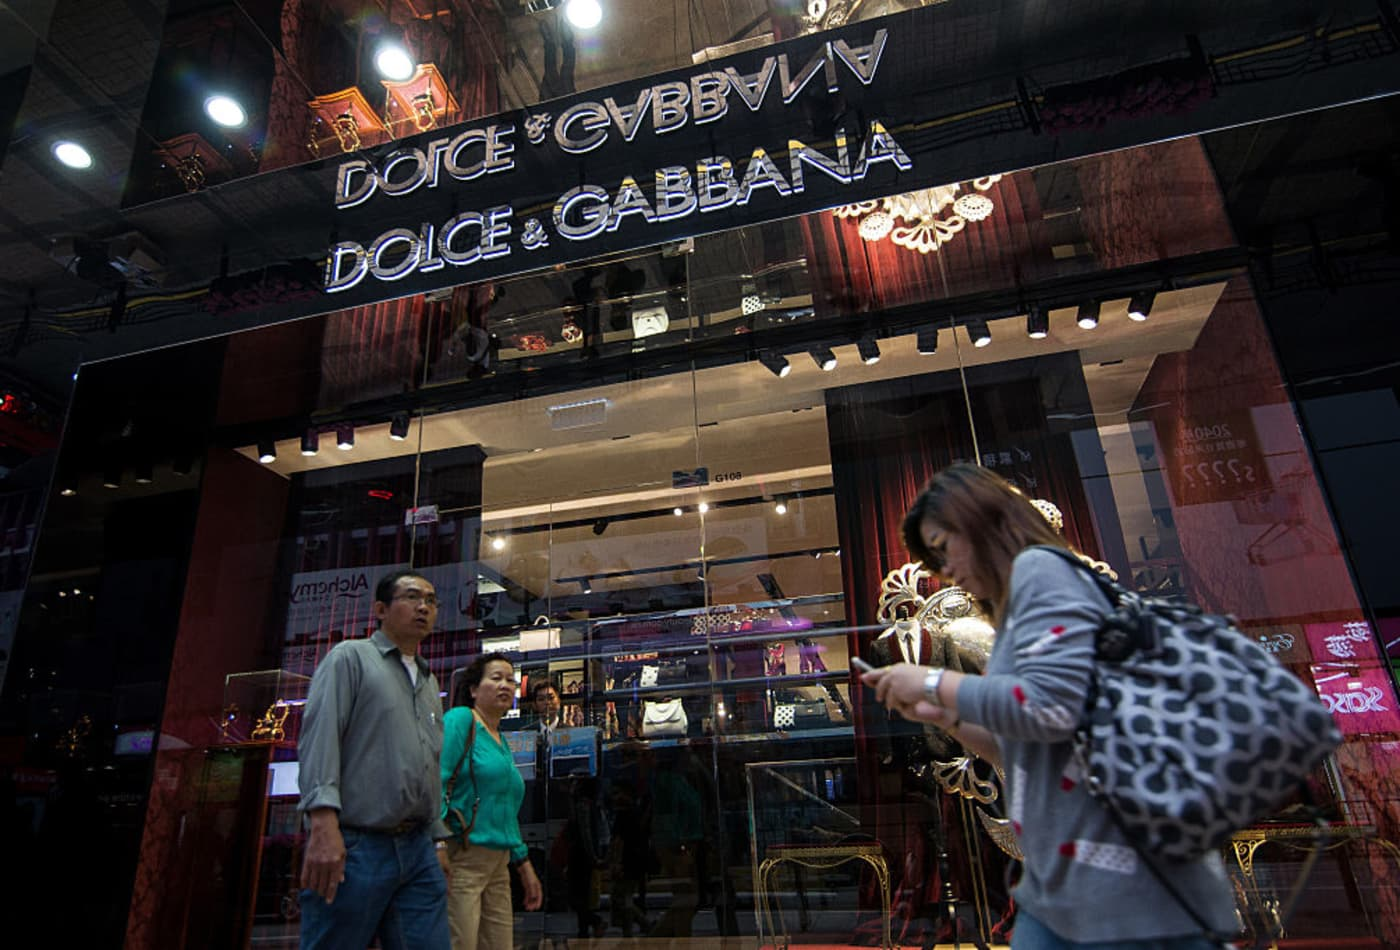 7106fa6921c9 Dolce and Gabbana reportedly cancels Shanghai show after racism ...